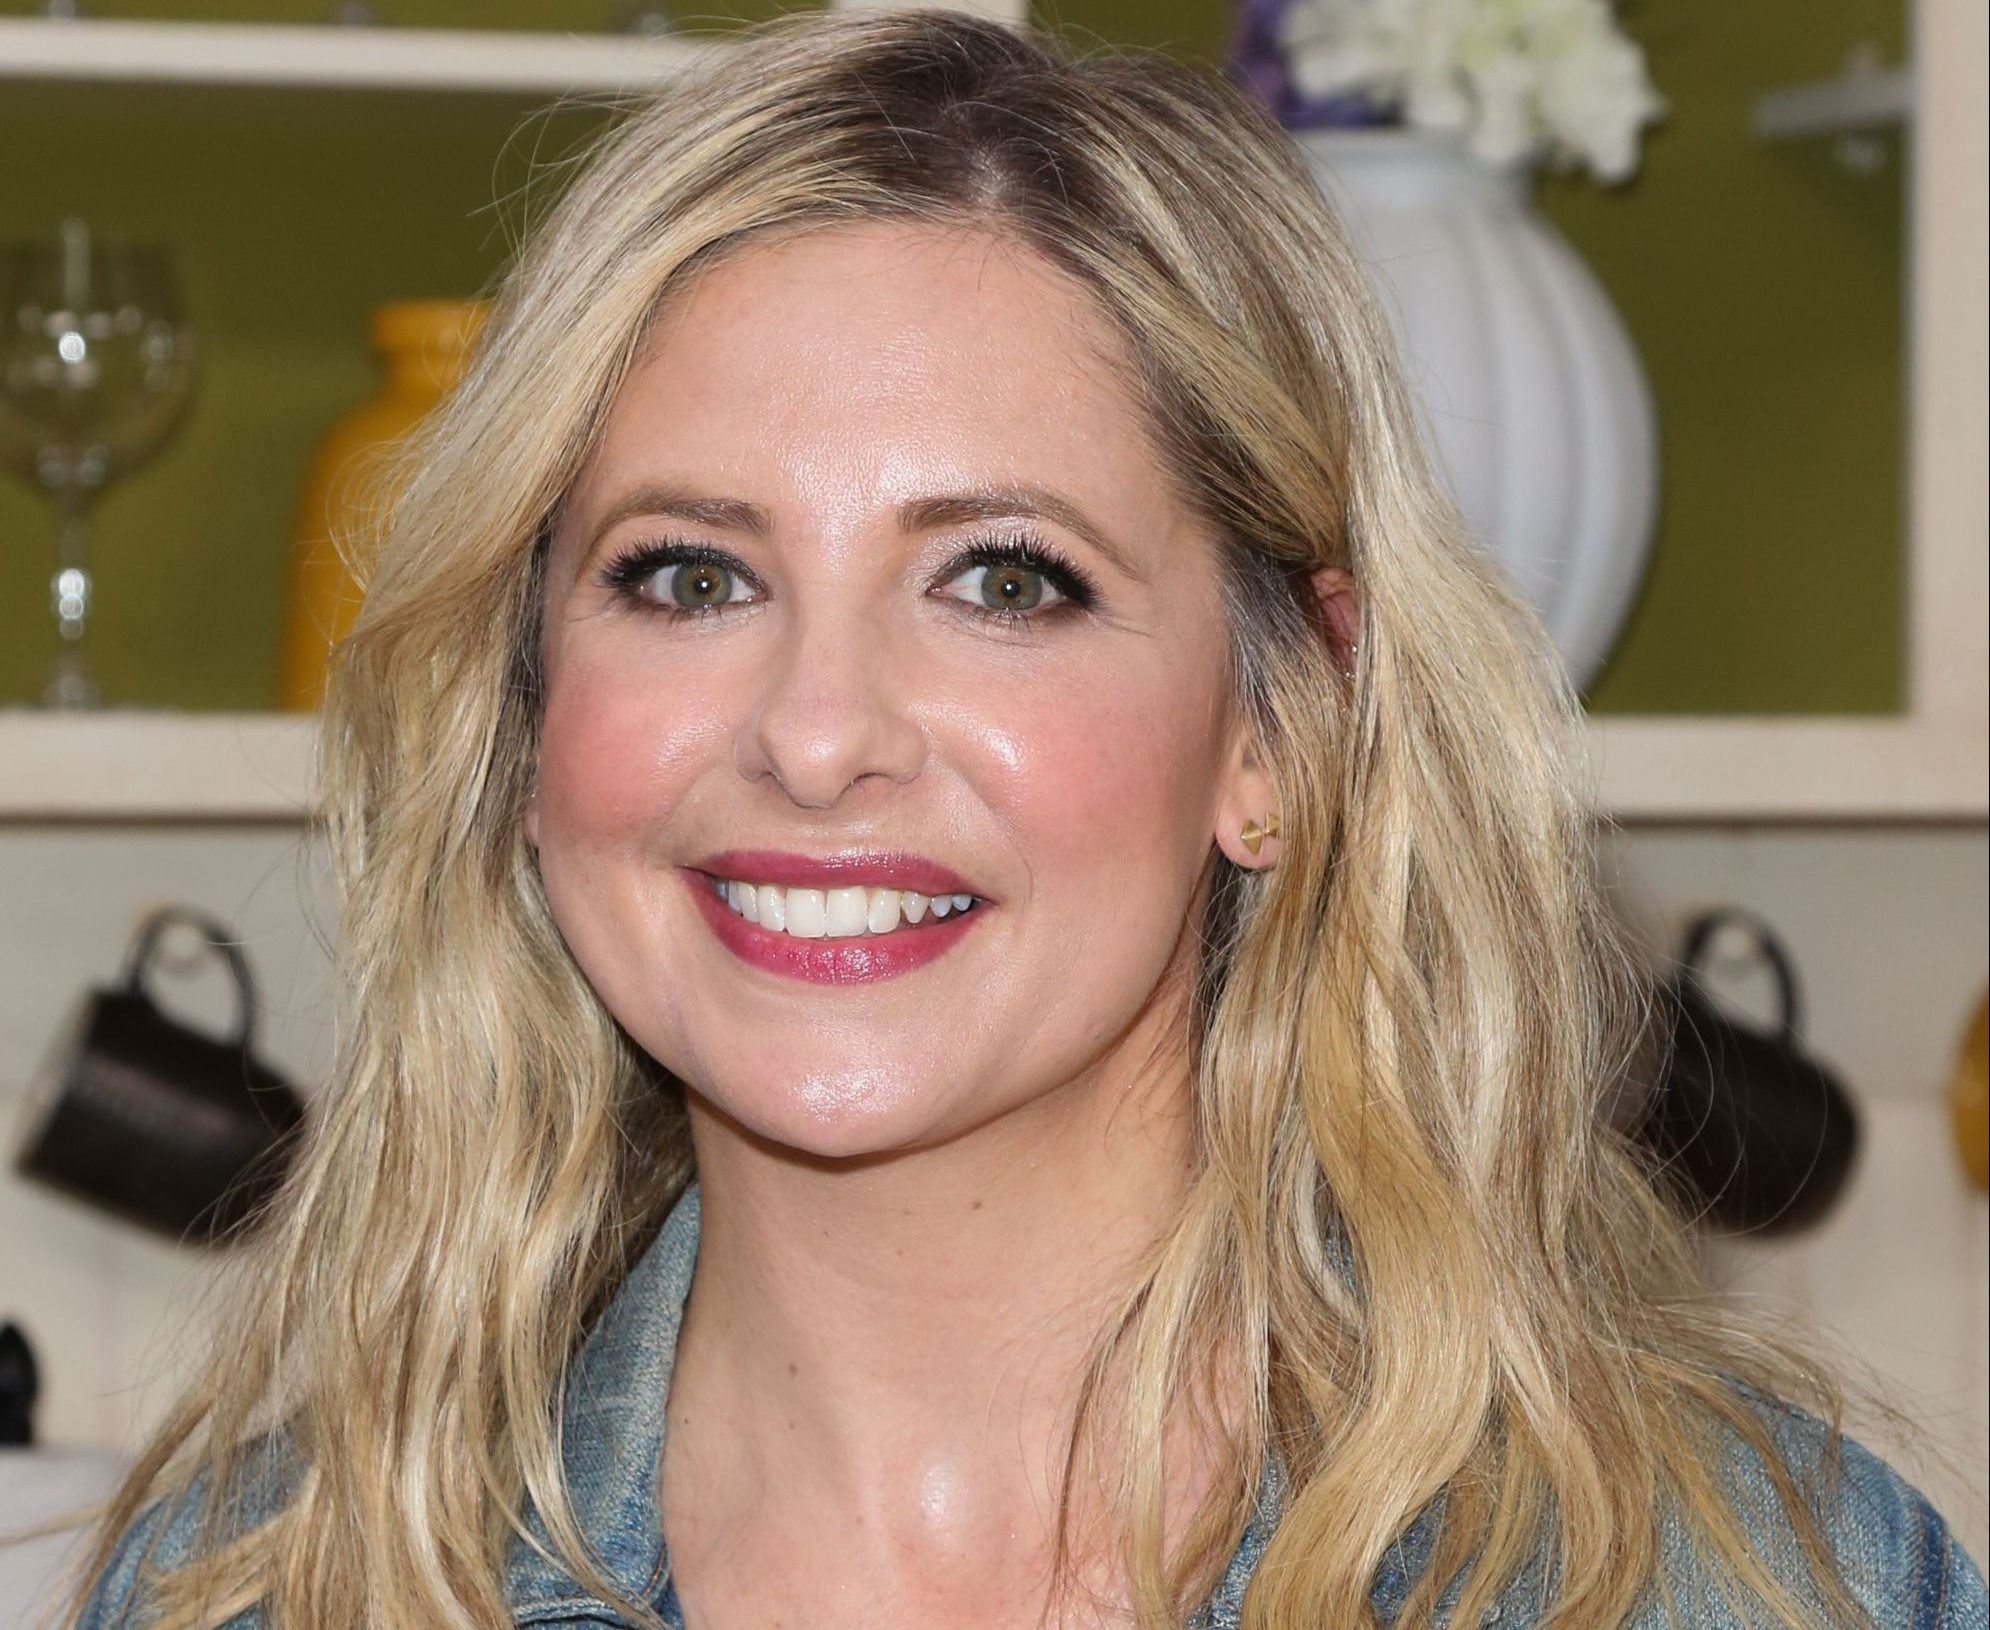 1542655133 actress sarah michelle gellar visit hallmarks home family news photo 962856582 1542636945 e1613734126511 25 Things You Didn't Know About Buffy The Vampire Slayer